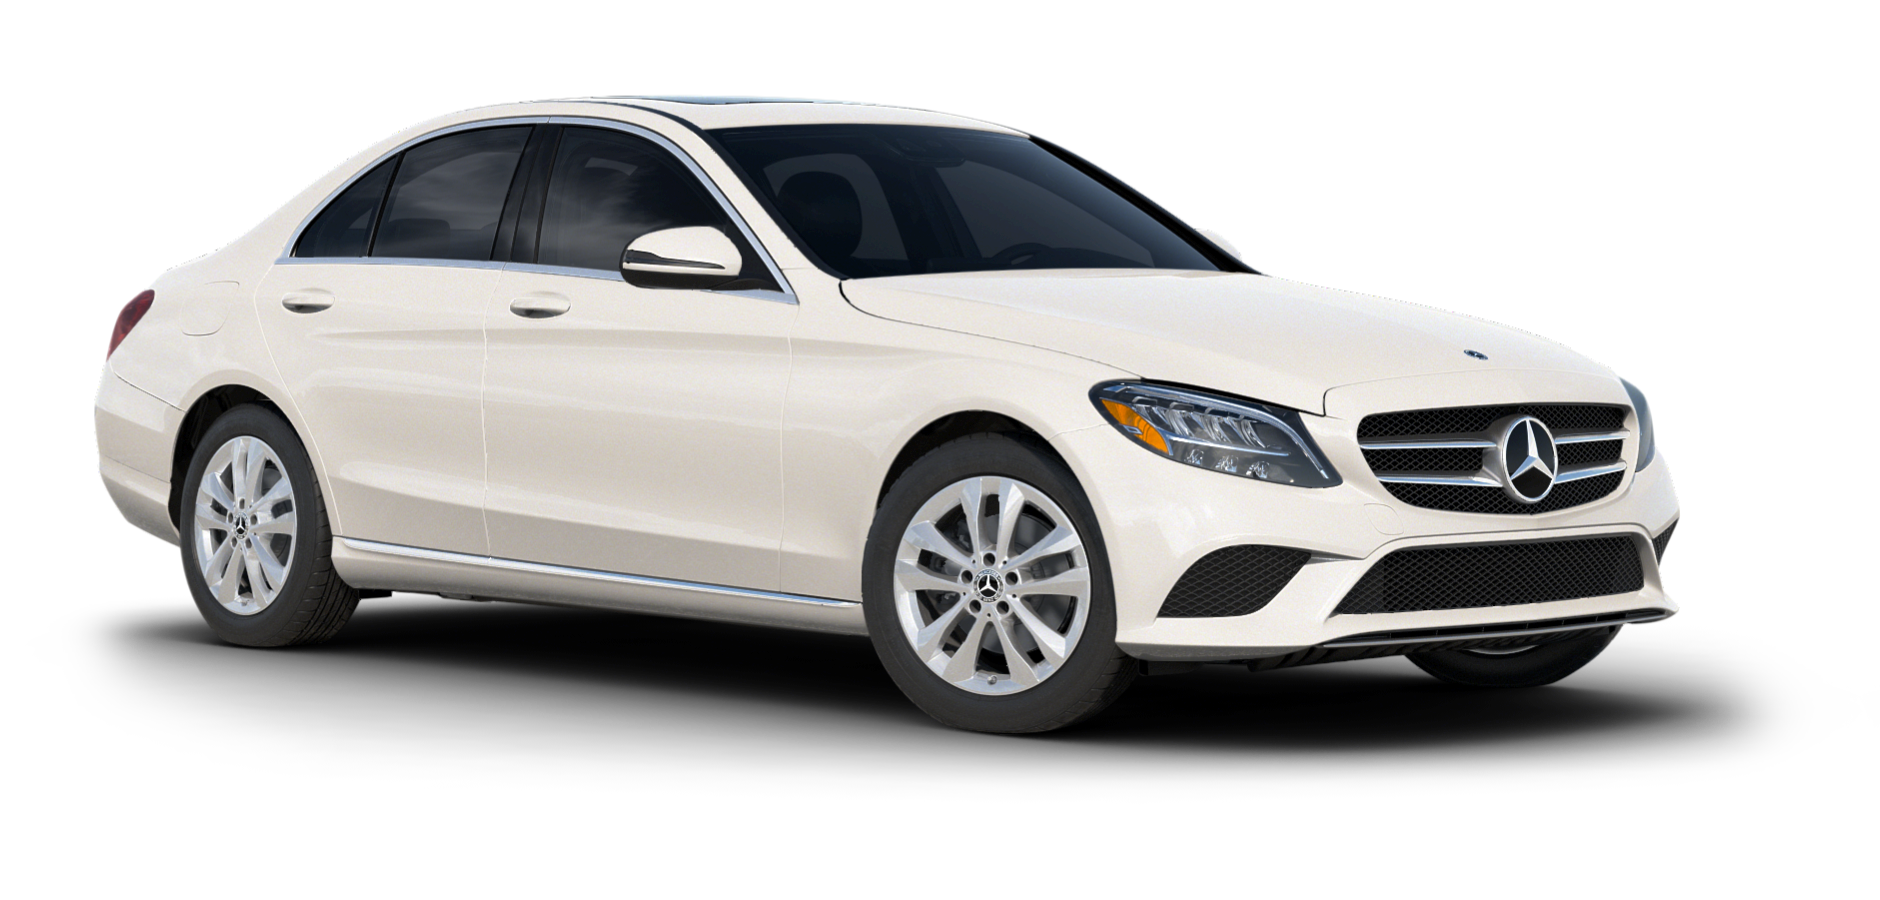 2019 Mercedes-Benz C 300 4MATIC Sedan